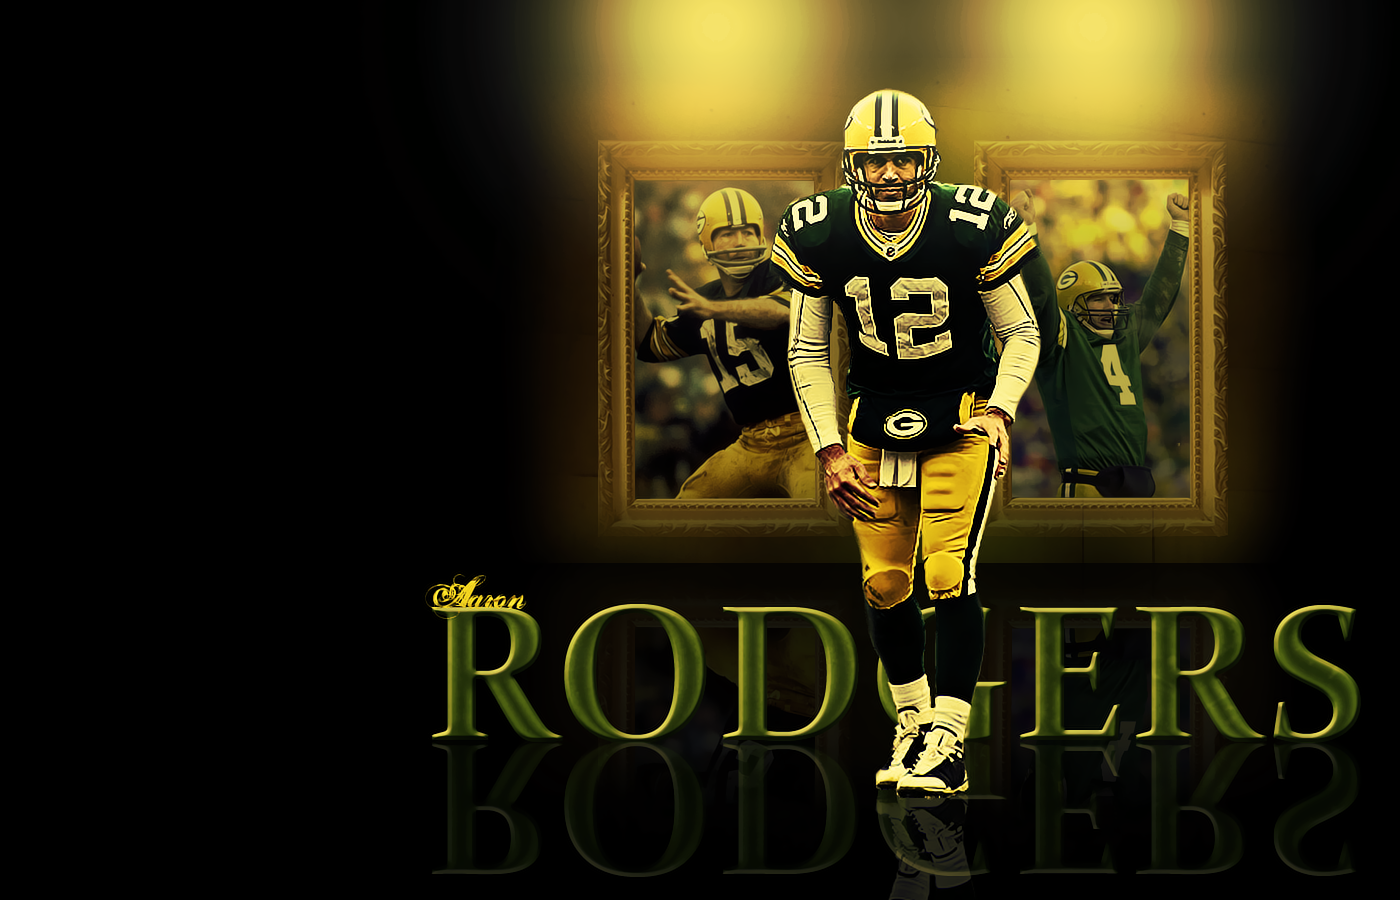 Pin By Semuel On Sports Green Bay Packers Aaron Rodgers Green Bay Packers Packers